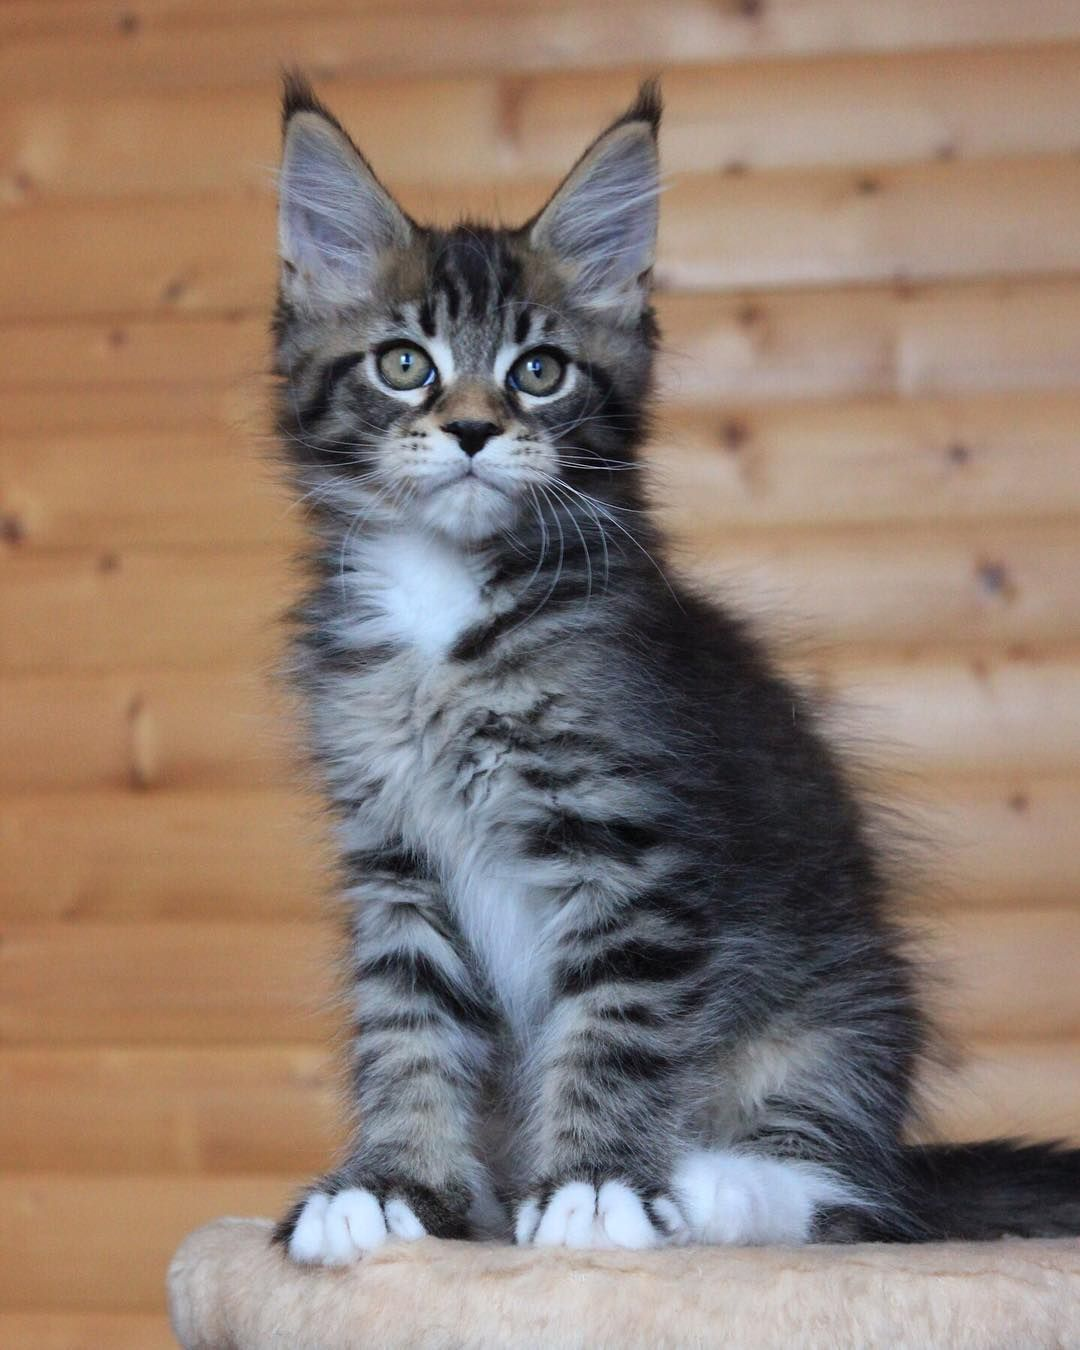 Pin By Pam Snyder On Cats Big And Small Baby Cats Cute Cats